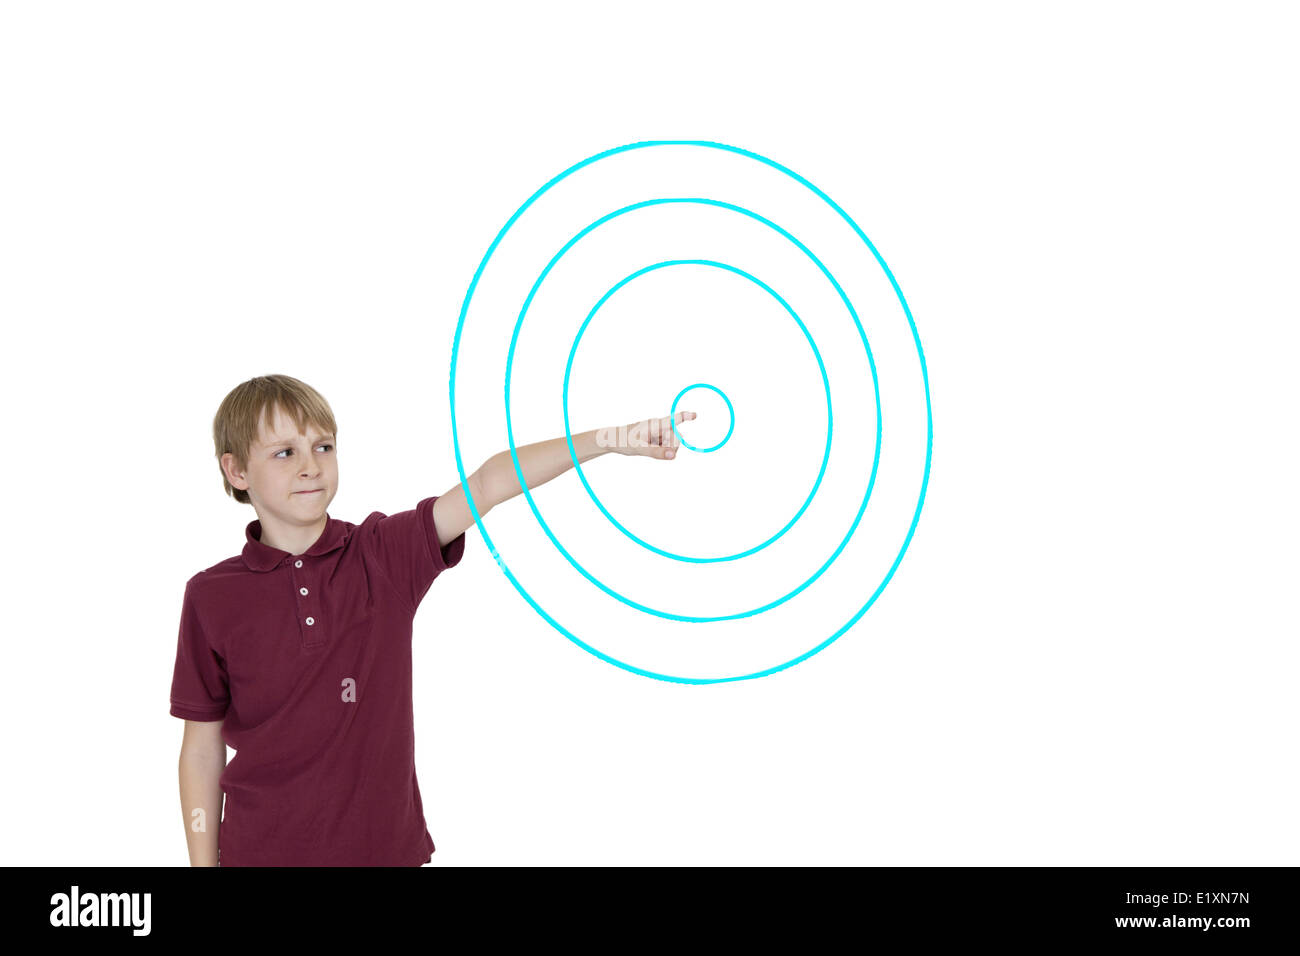 Young boy pointing to digitally designed concentric circles over white background - Stock Image